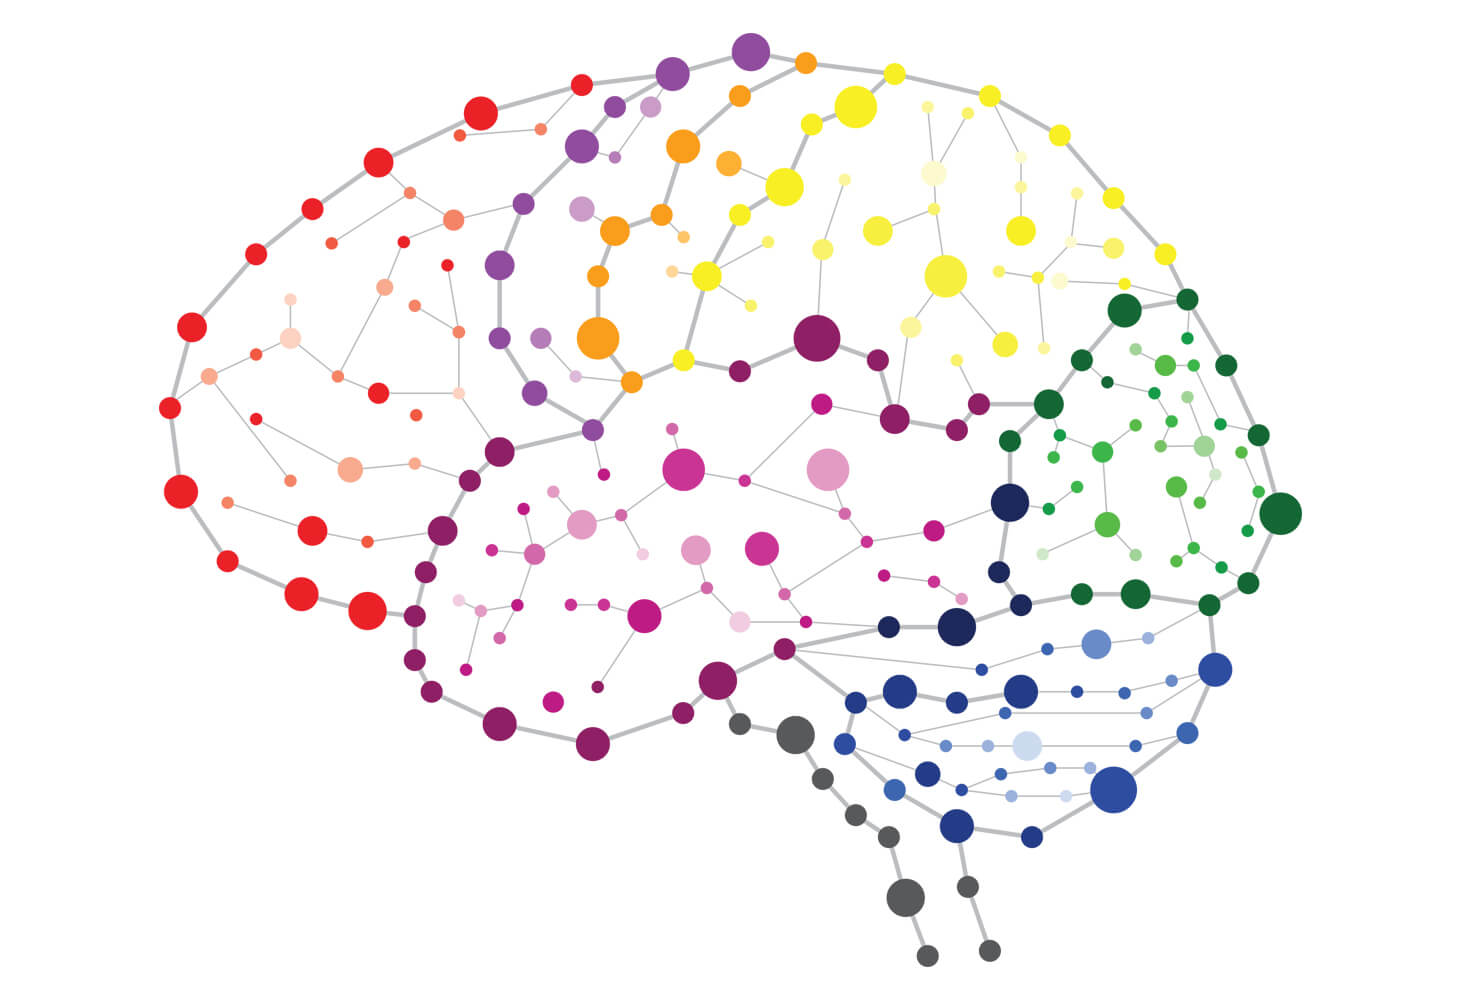 Graphic depicting the brain network